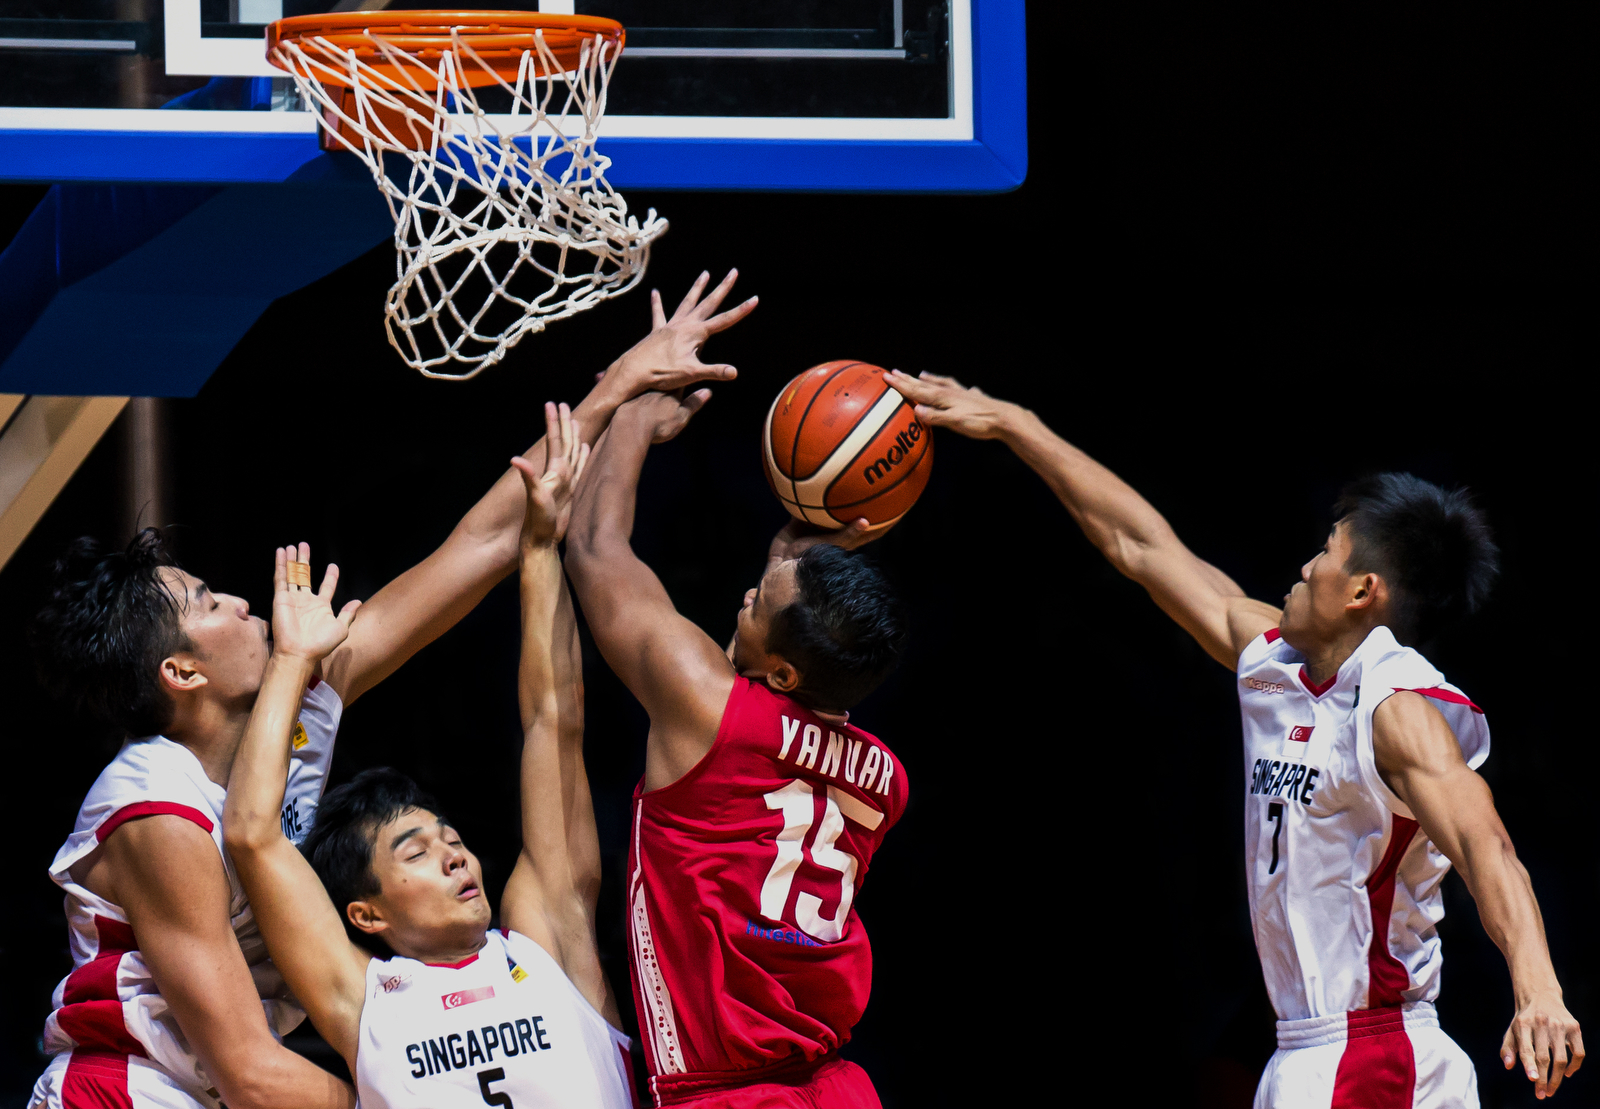 Yanuar Dwi Priasmoro (#15) of Indonesia goes for the layup against Singapore on day 3 of the 11th SEABA Championship at the OCBC Arena on April 29, 2015 in Singapore.